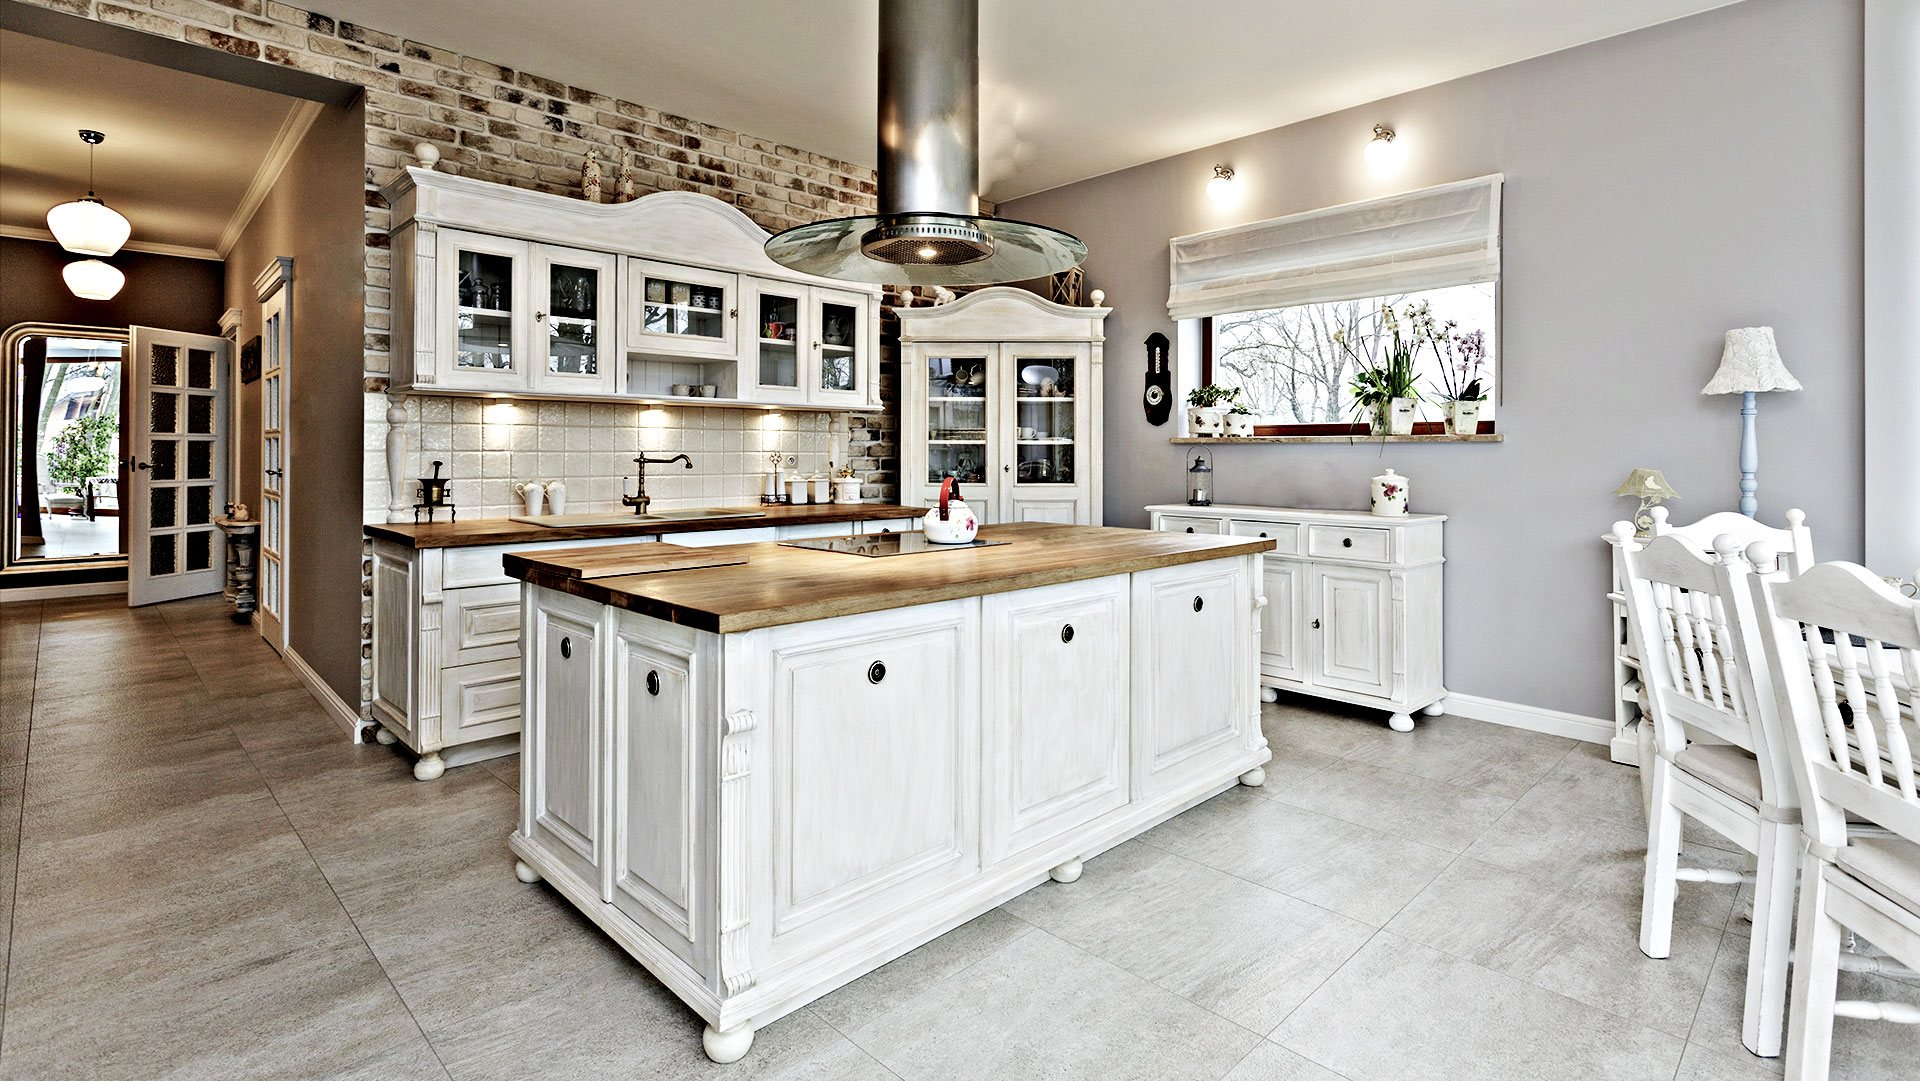 Epic Home Improvements Inc. Remodeled Kitchen 2